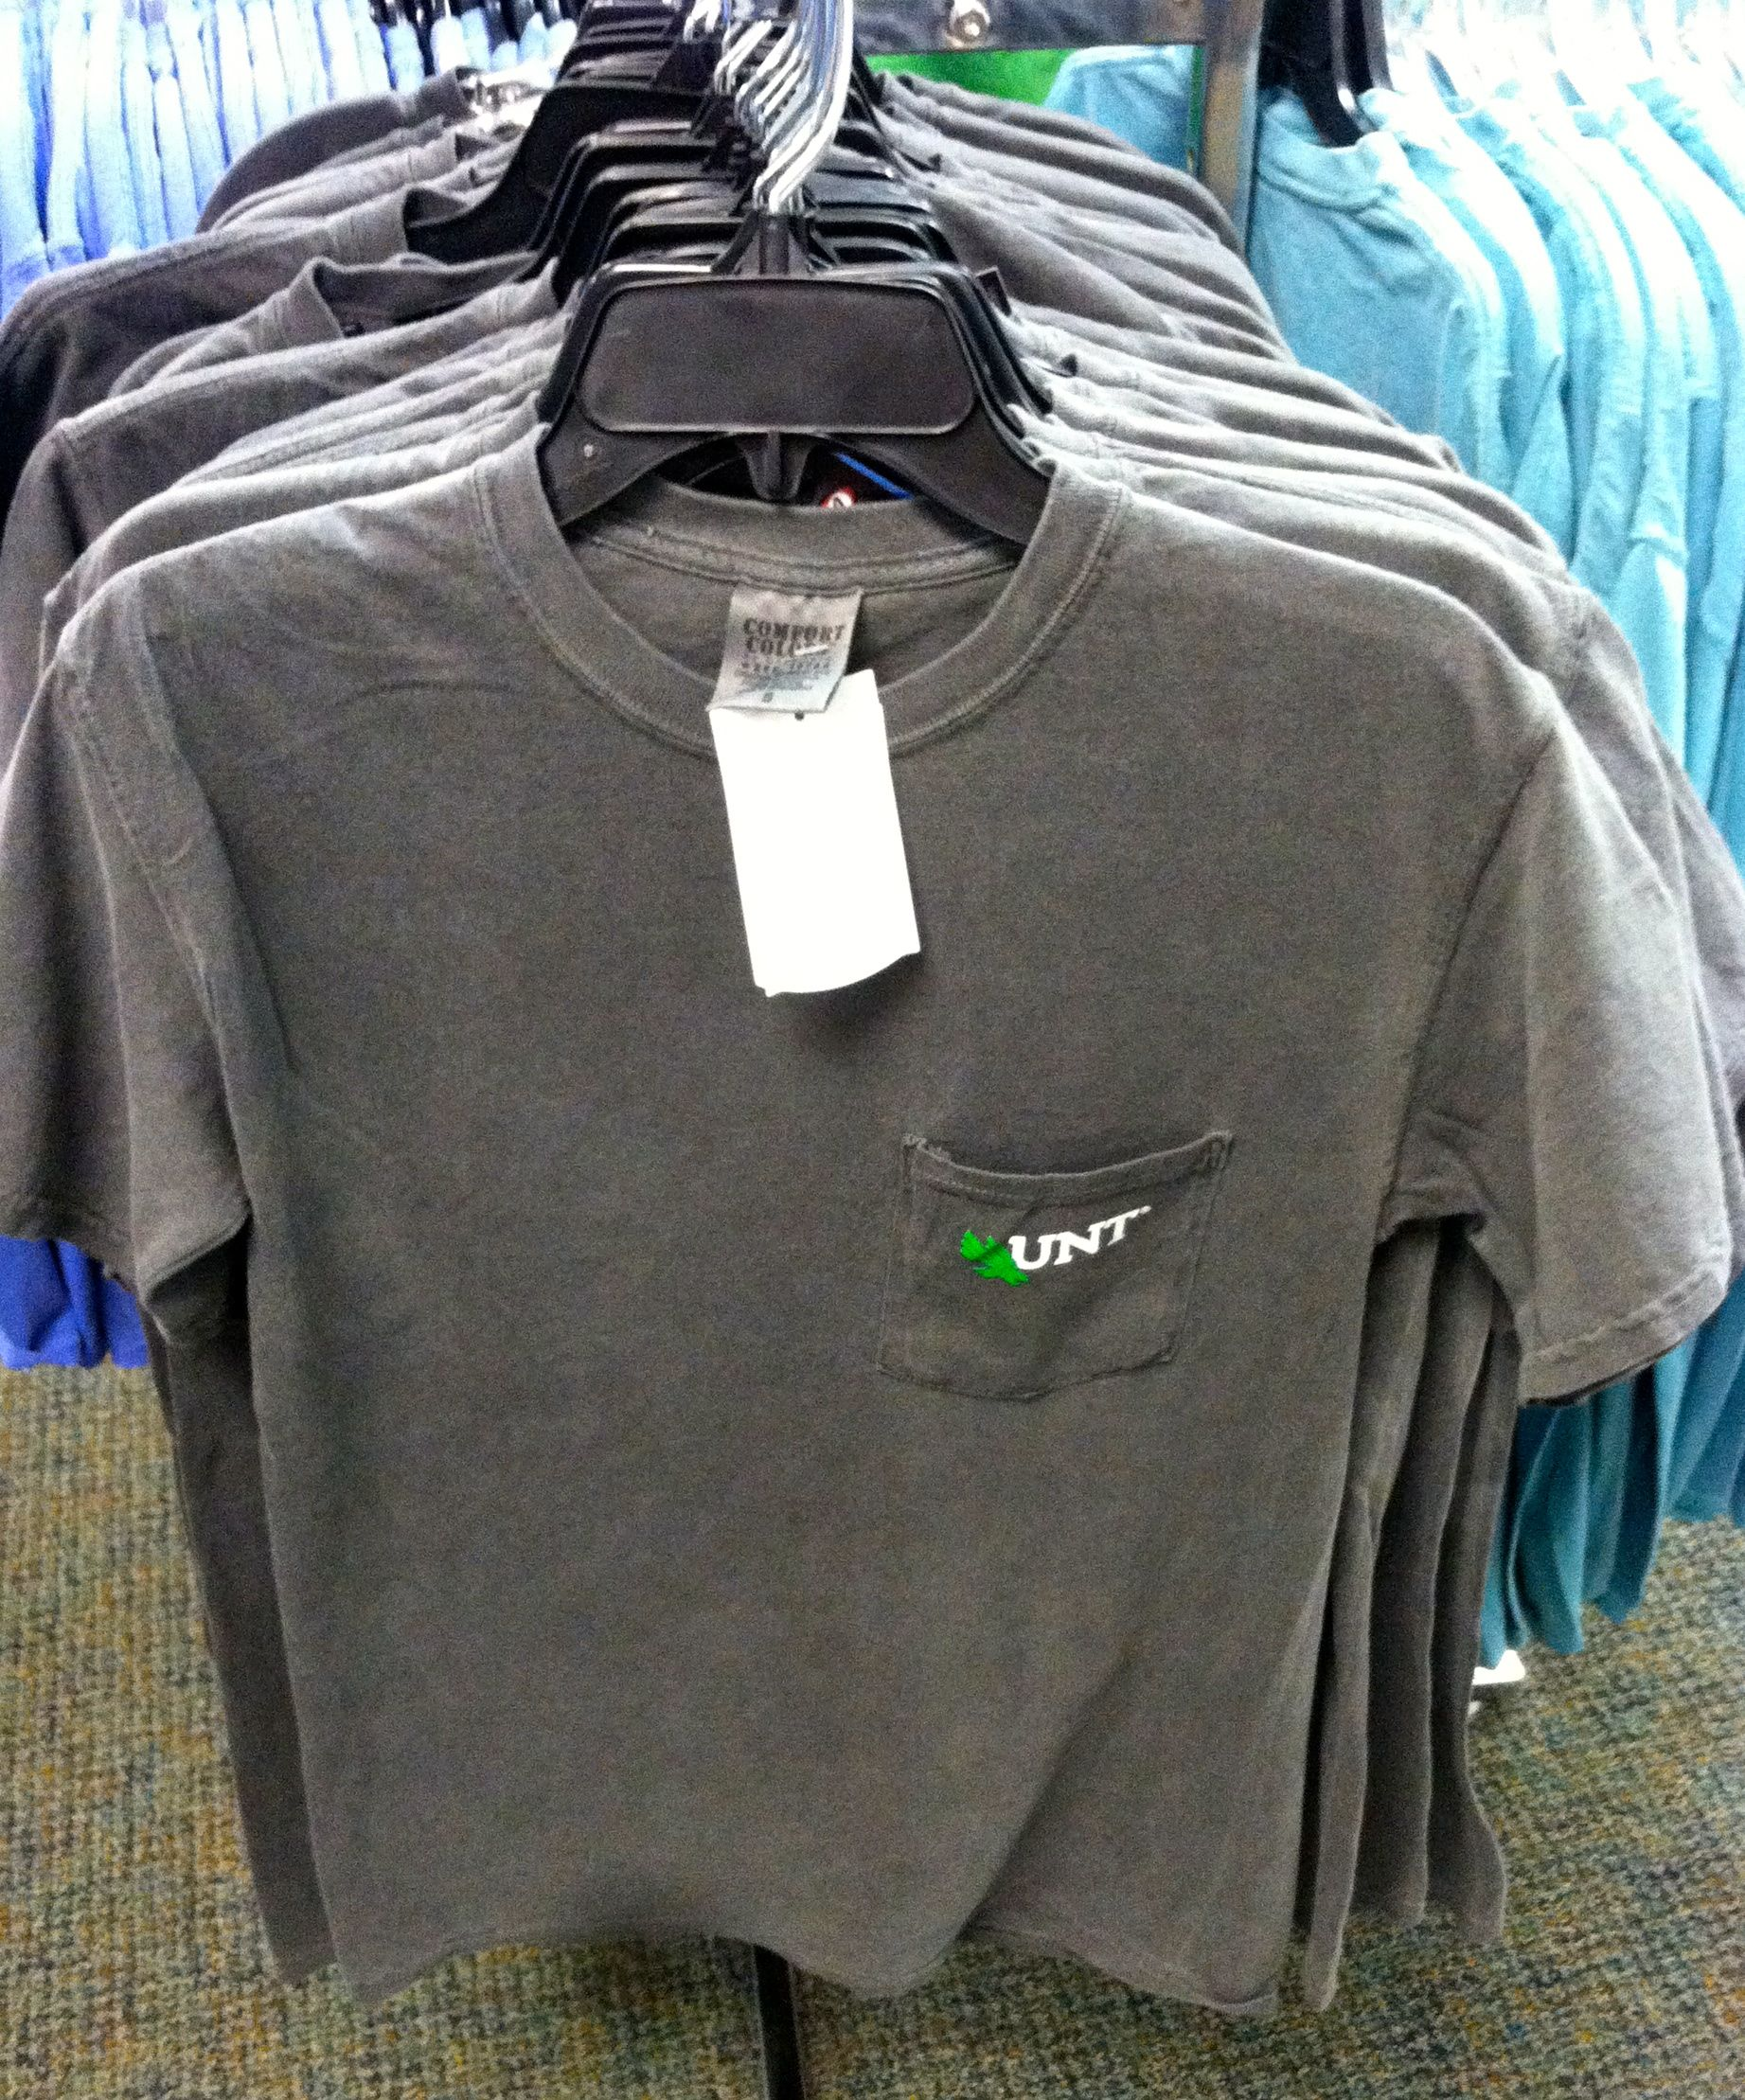 North Texas UNT Comfort Colors Frocket Shirt In 4 Different At Voertmans